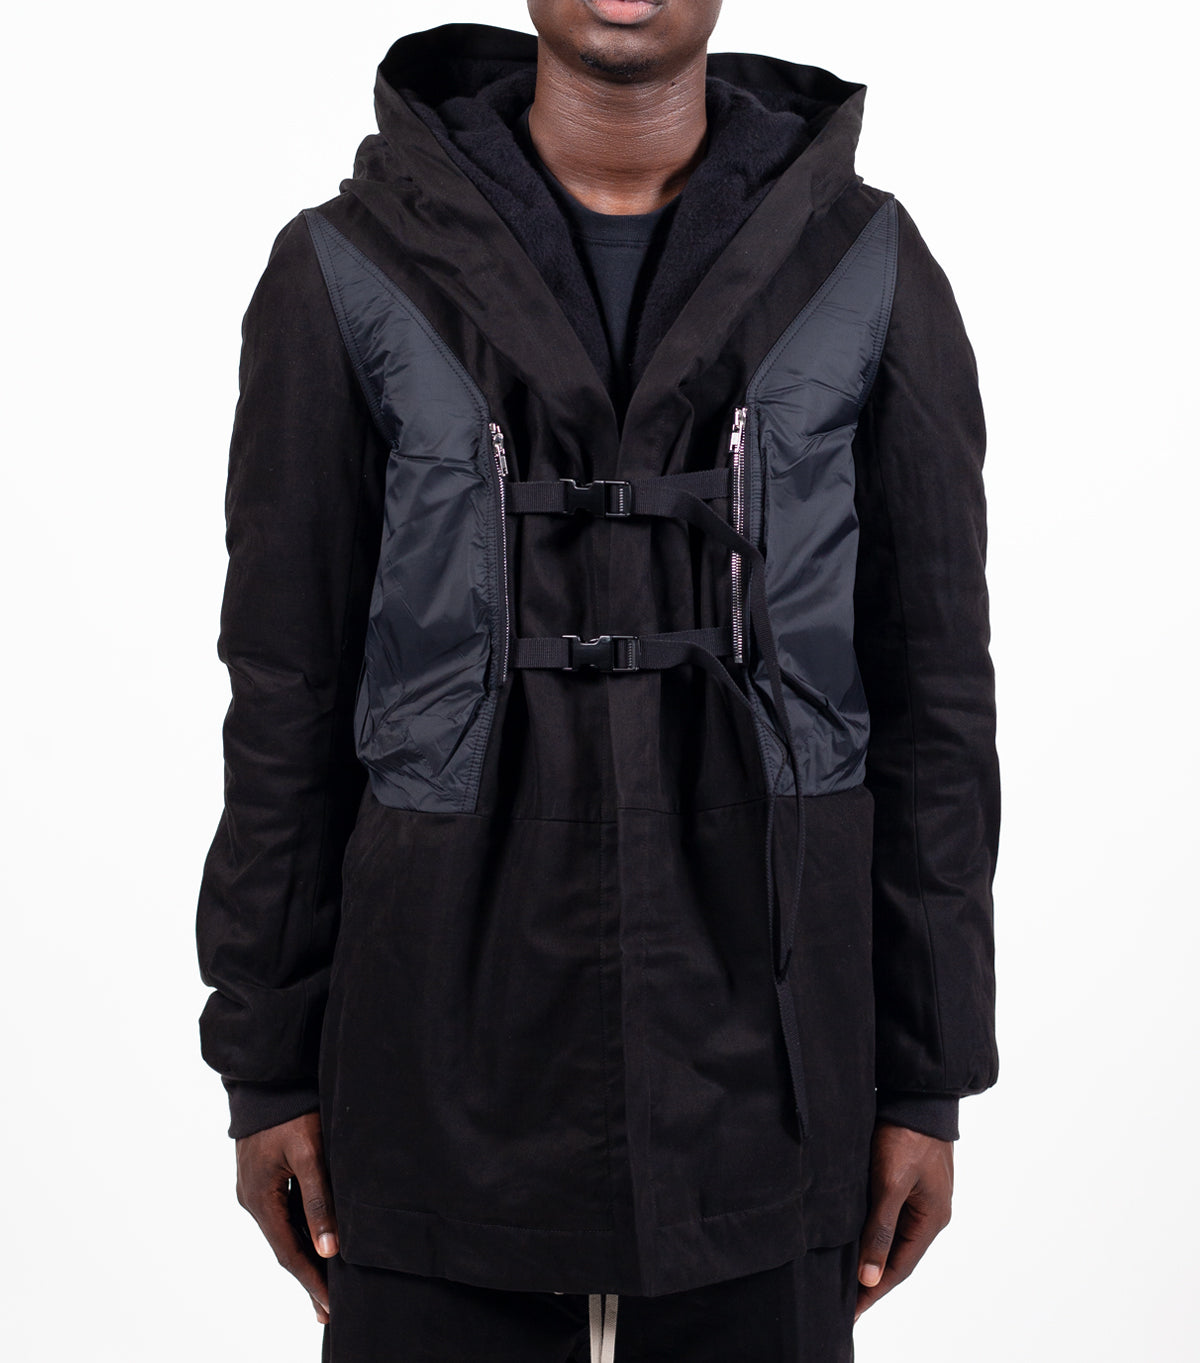 RICK OWENS DRKSHDW CONSTRAINT JACKET BLACK